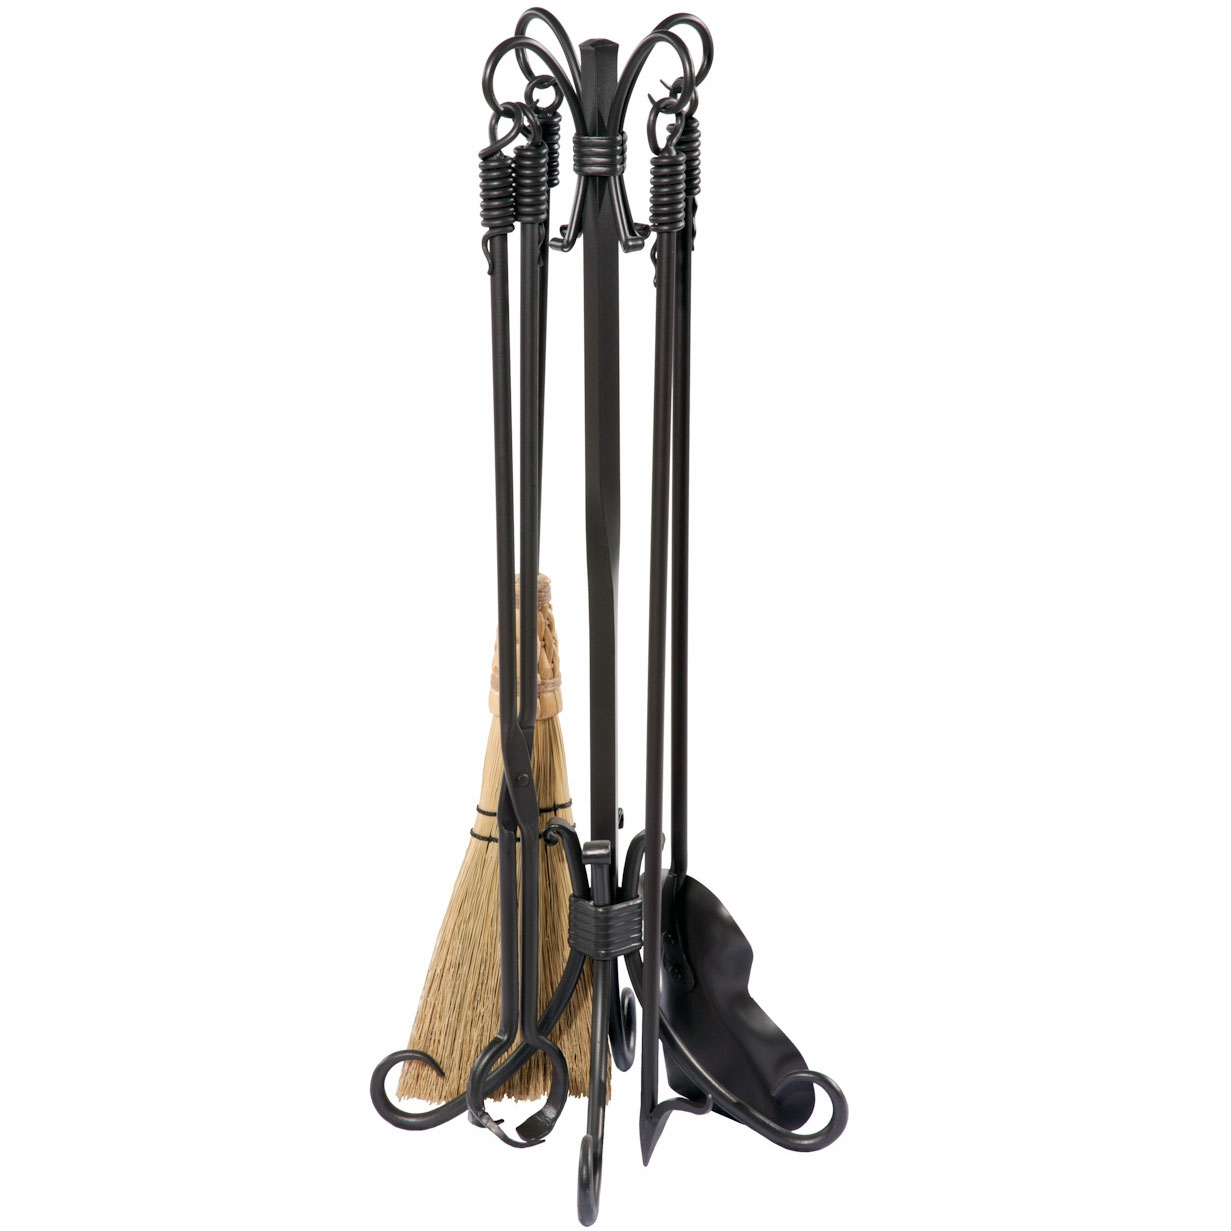 Amusing wrought iron fireplace tools pine firelace tool for your home interior tool improvements